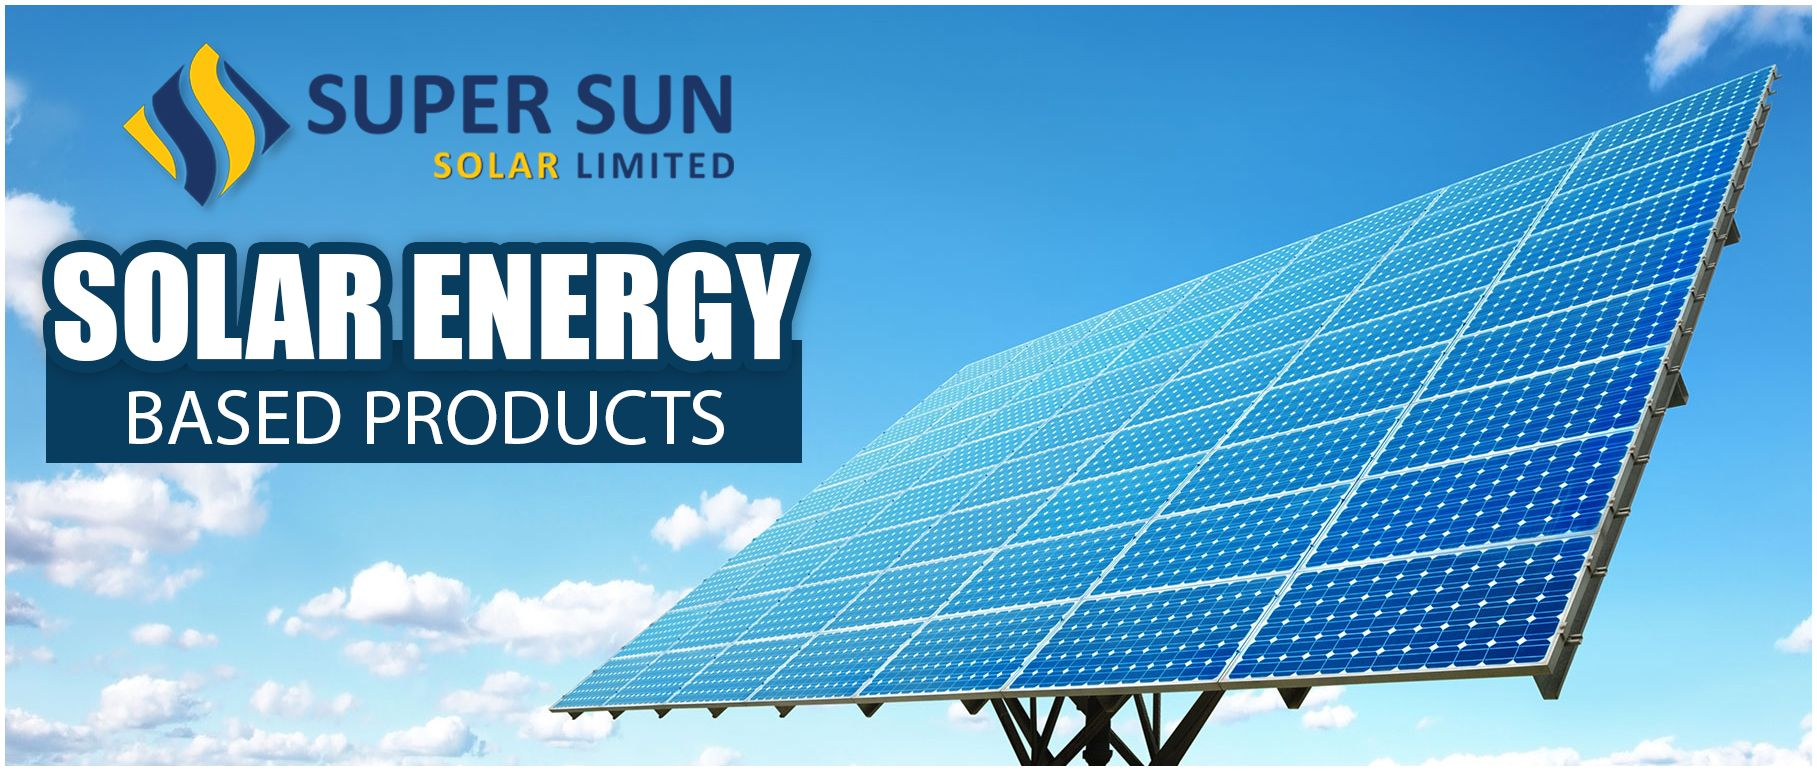 Constant Innovation And Development Has Enabled Super Sun Solar To Come Out With A Variety Of Solar Energy Based Products Our Pro Solar Sun Solar Solar Energy